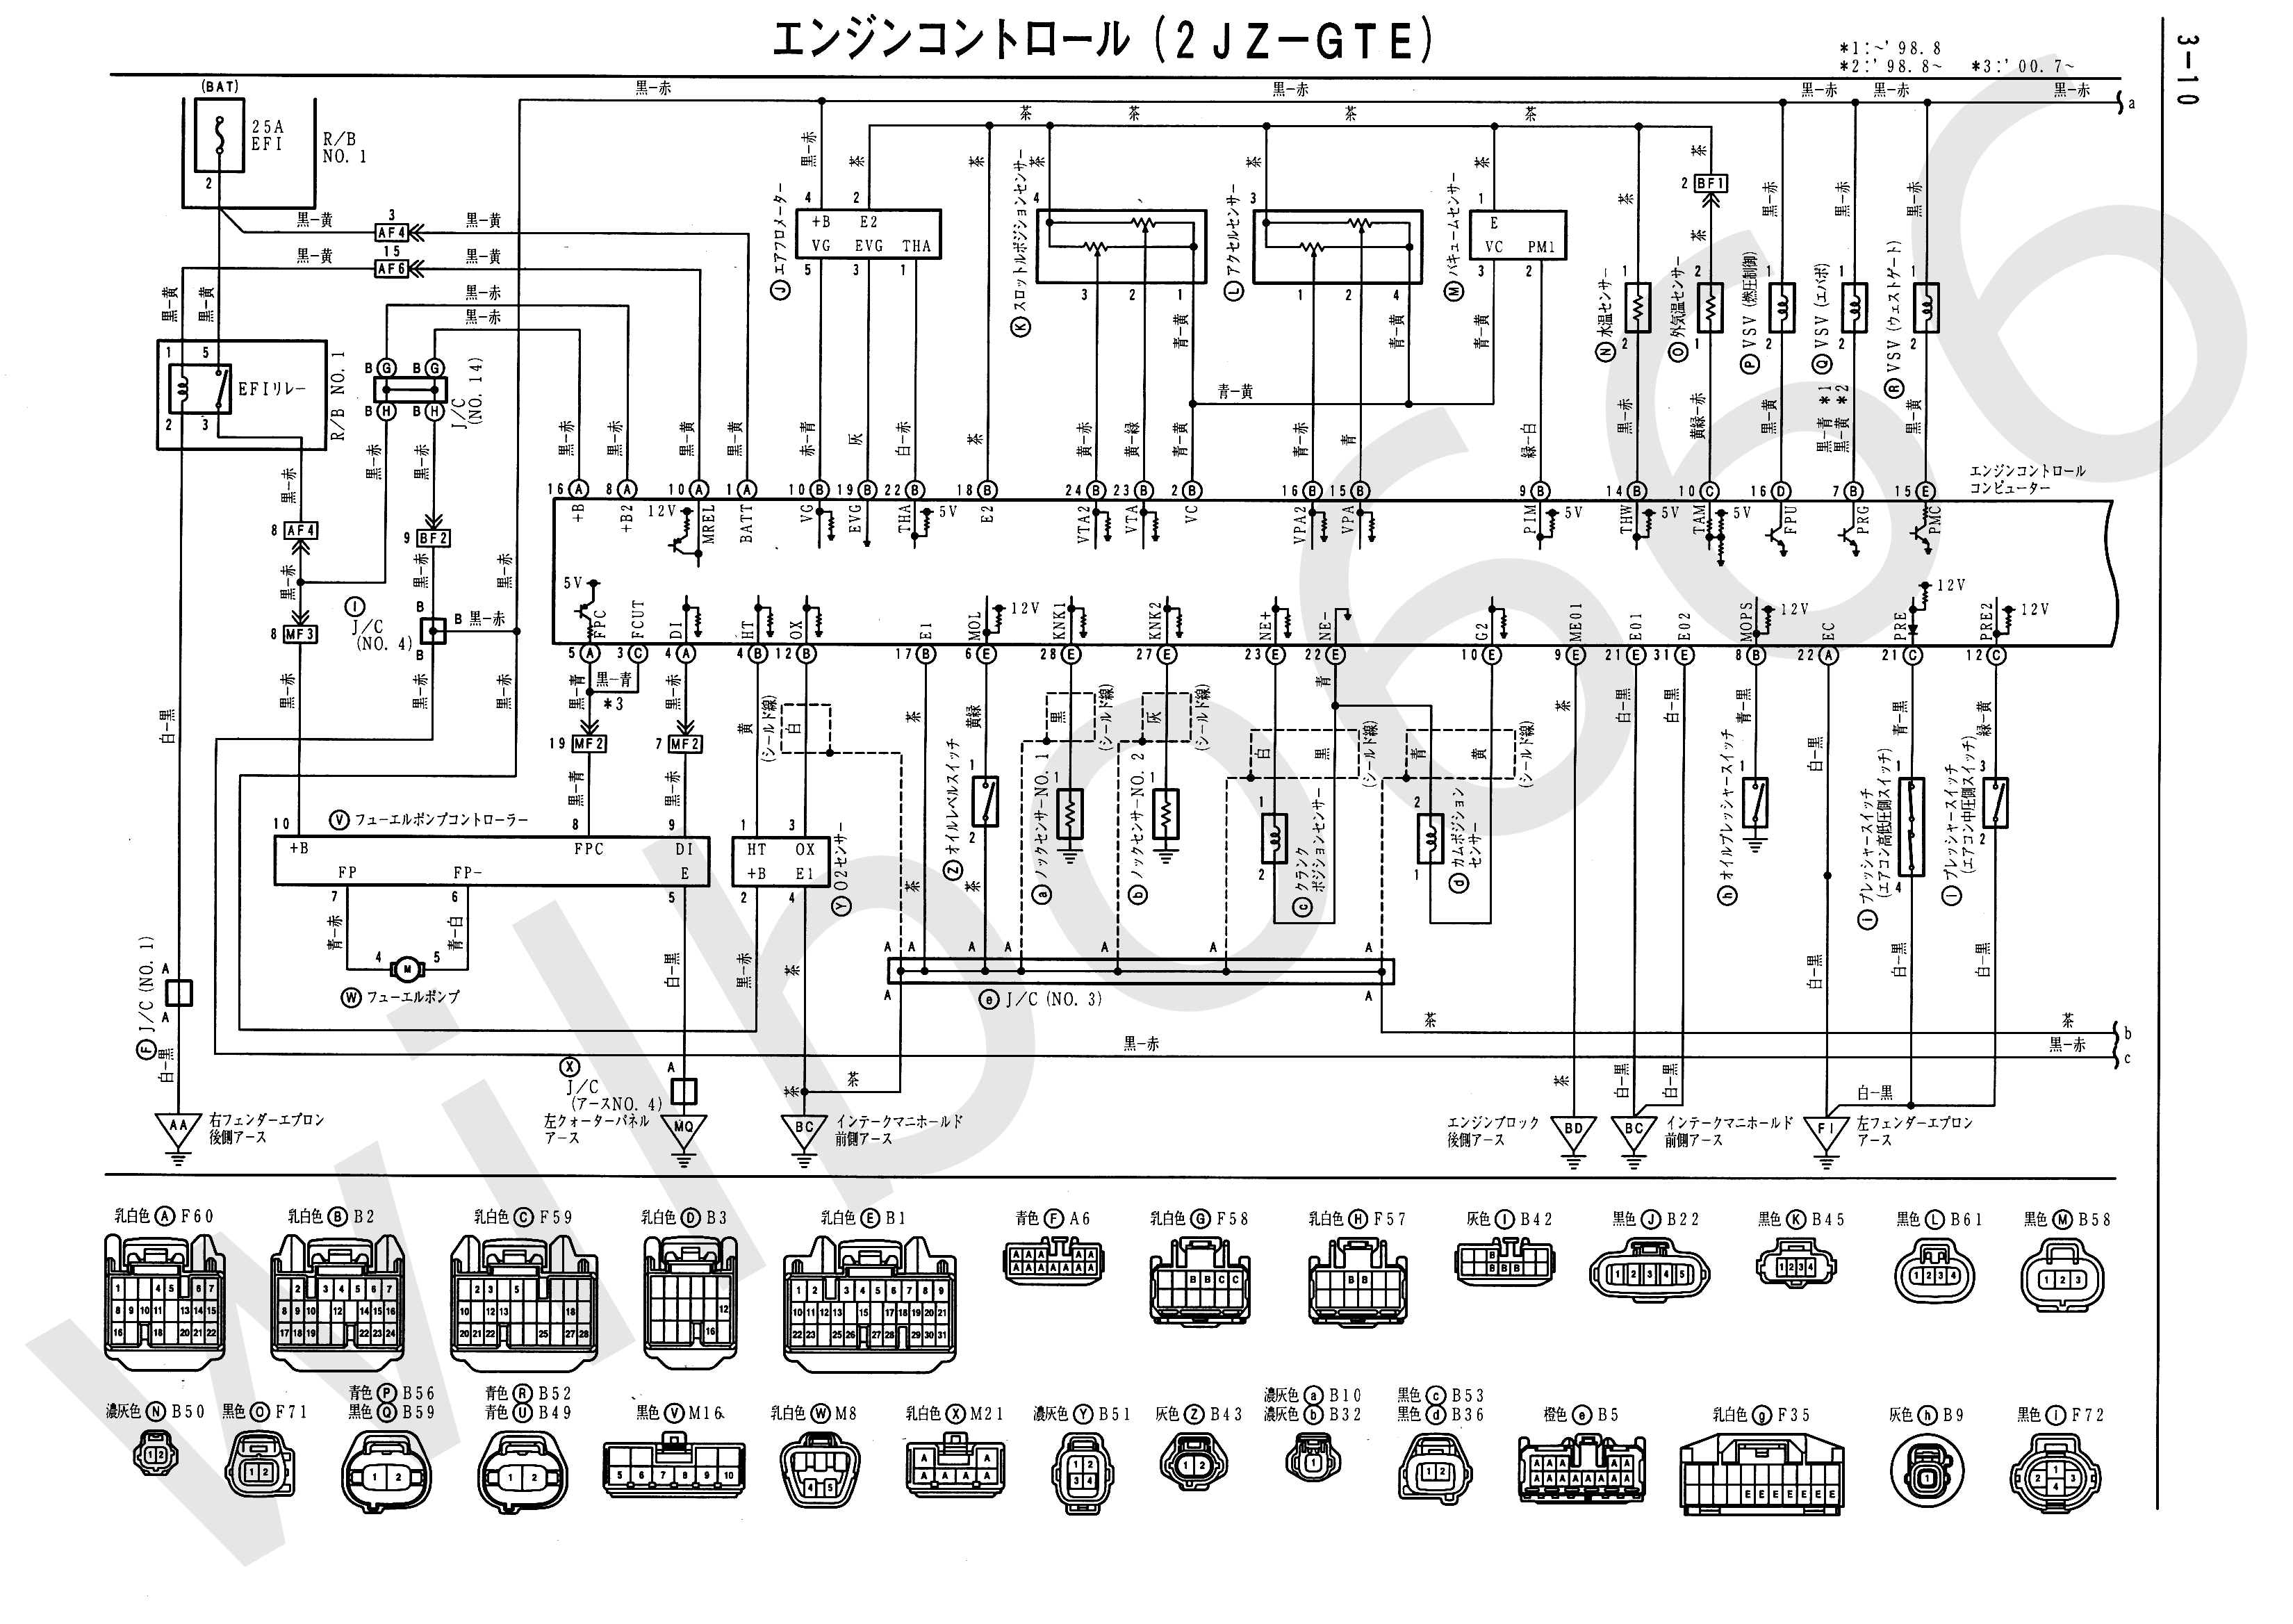 Toyota Electrical Wiring Diagram: wilbo666 / 2JZ-GTE VVTi JZS161 Aristo Engine Wiring,Design